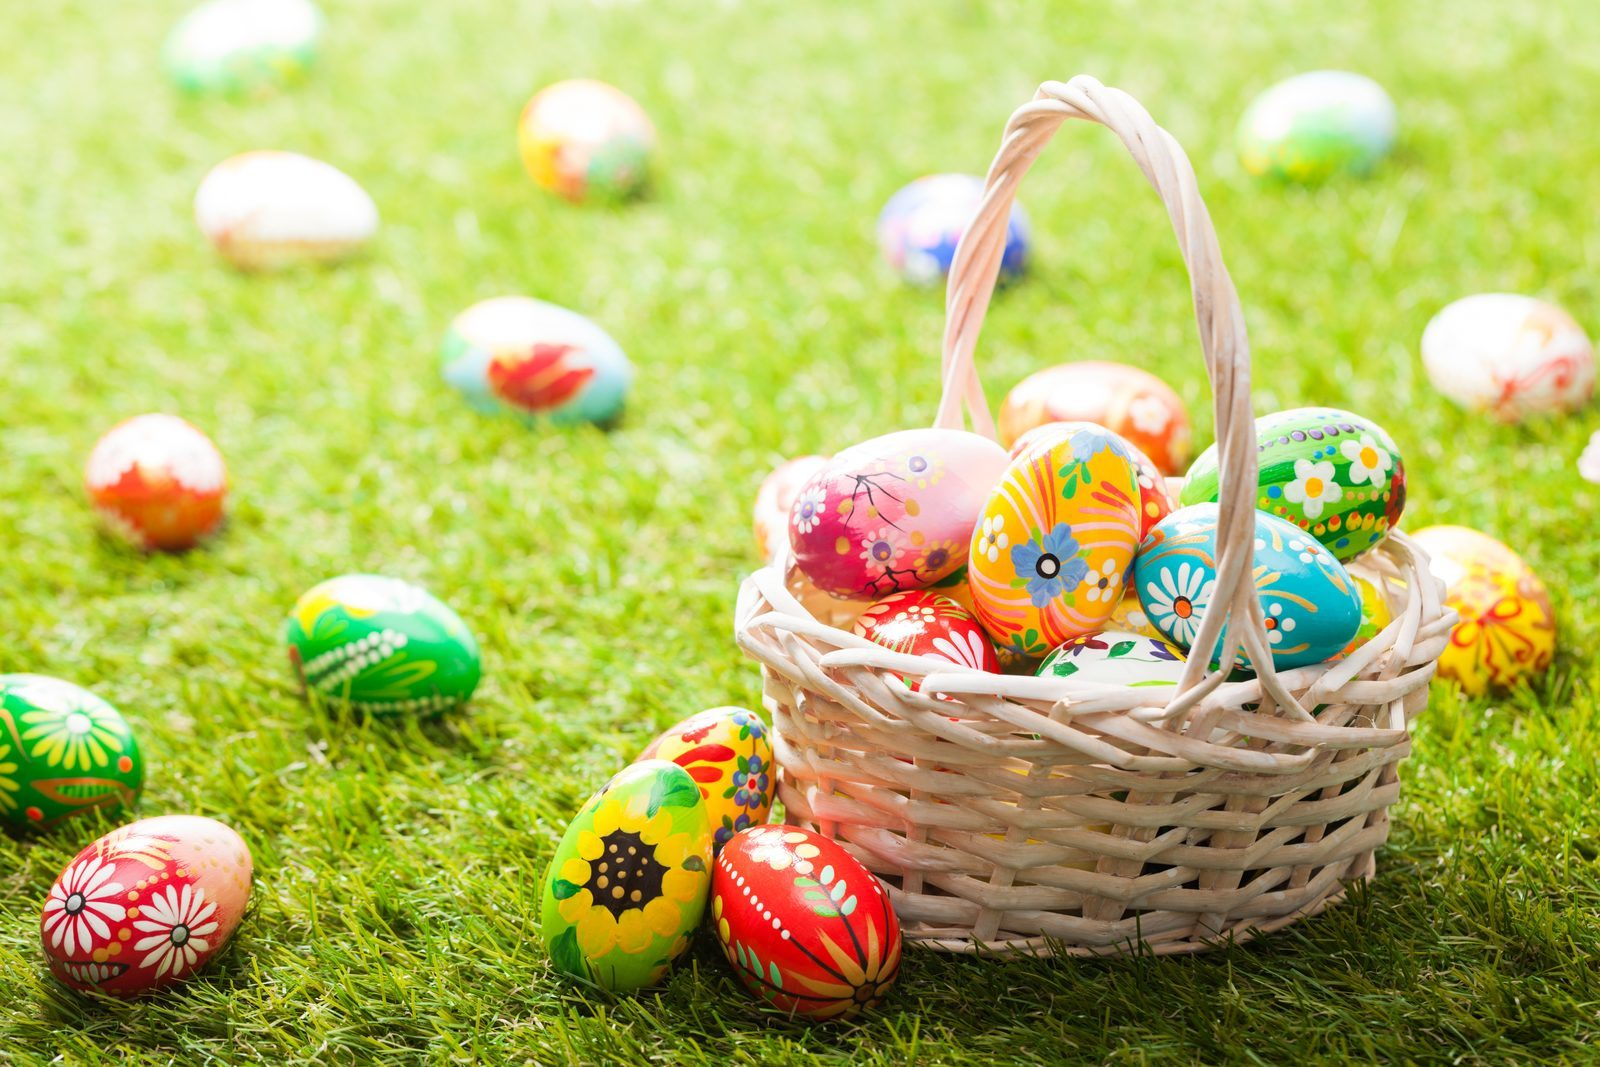 Celebrate Easter in Resort Mooi Bemelen